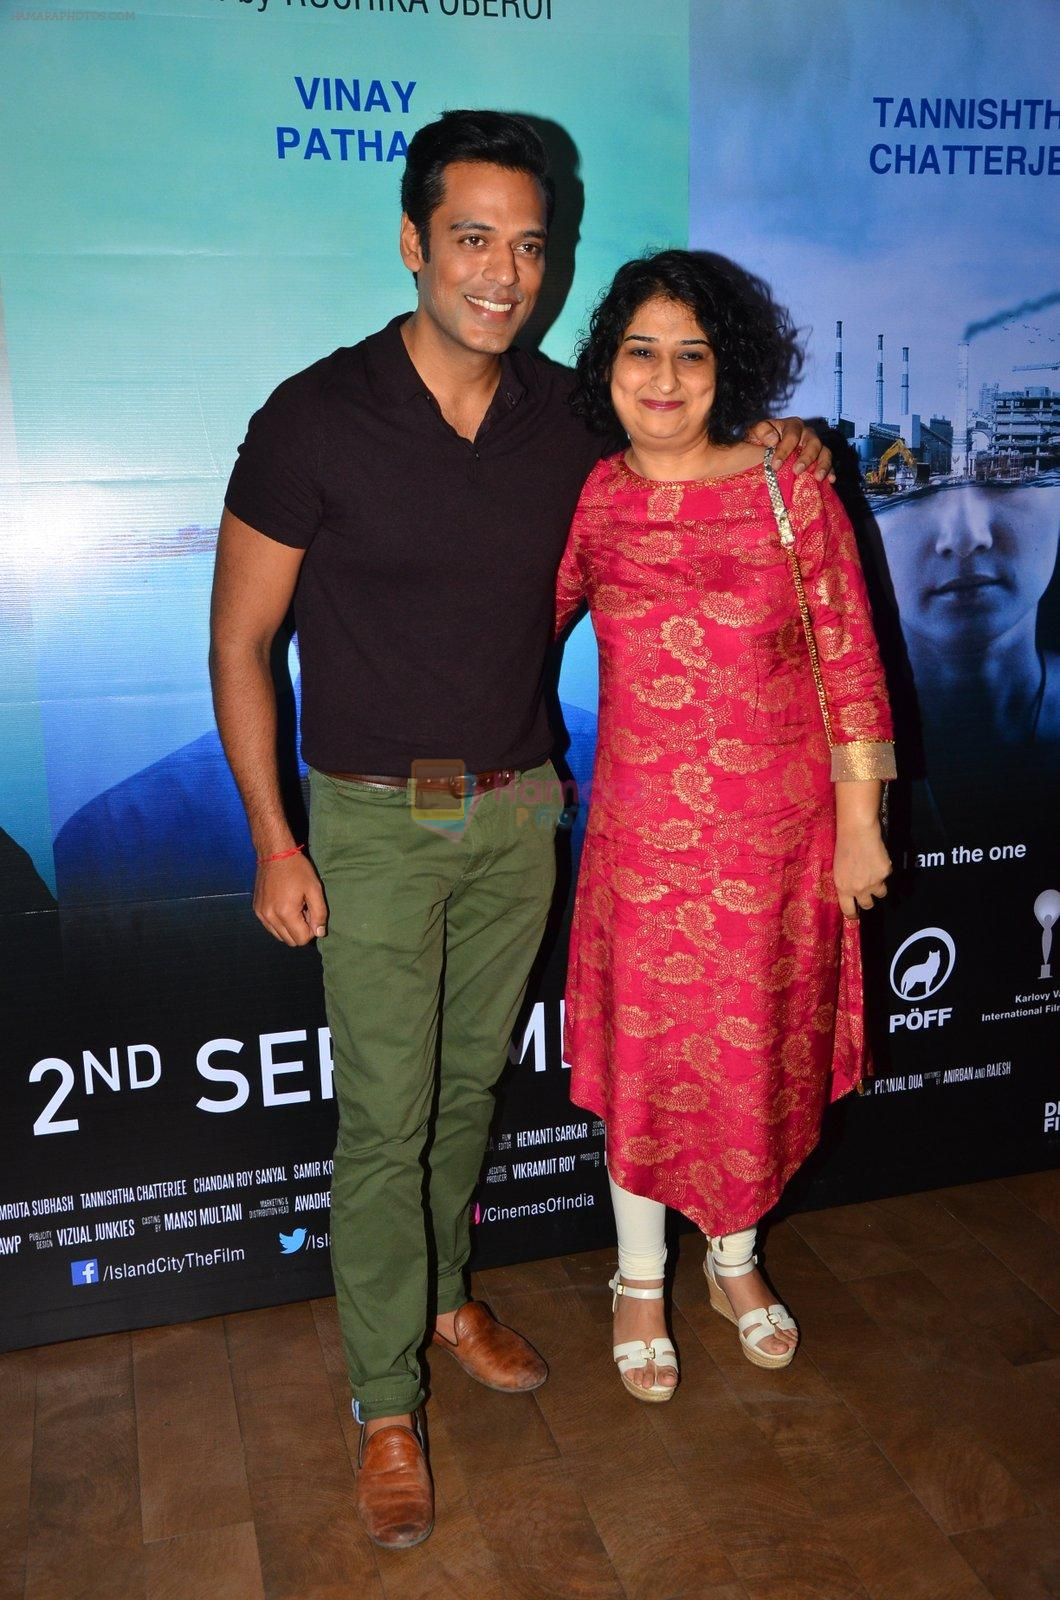 Sammir Kochhar at Island City screening on 31st Aug 2016